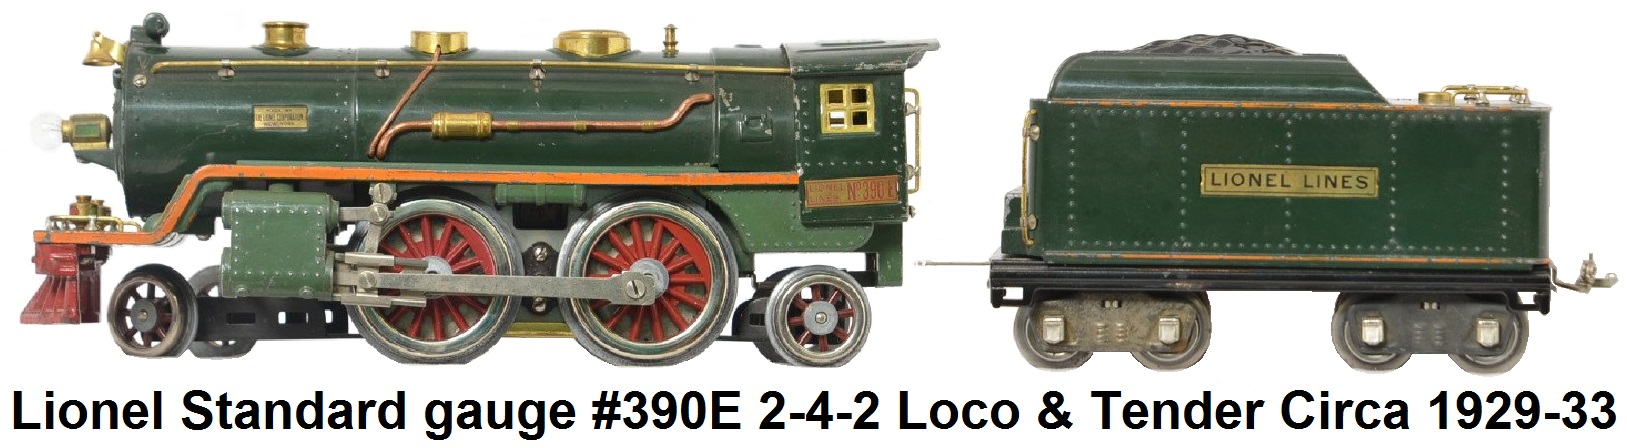 Lionel Standard gauge #390E 2-4-2 Stephen Girard set Steam Loco circa 1929-33